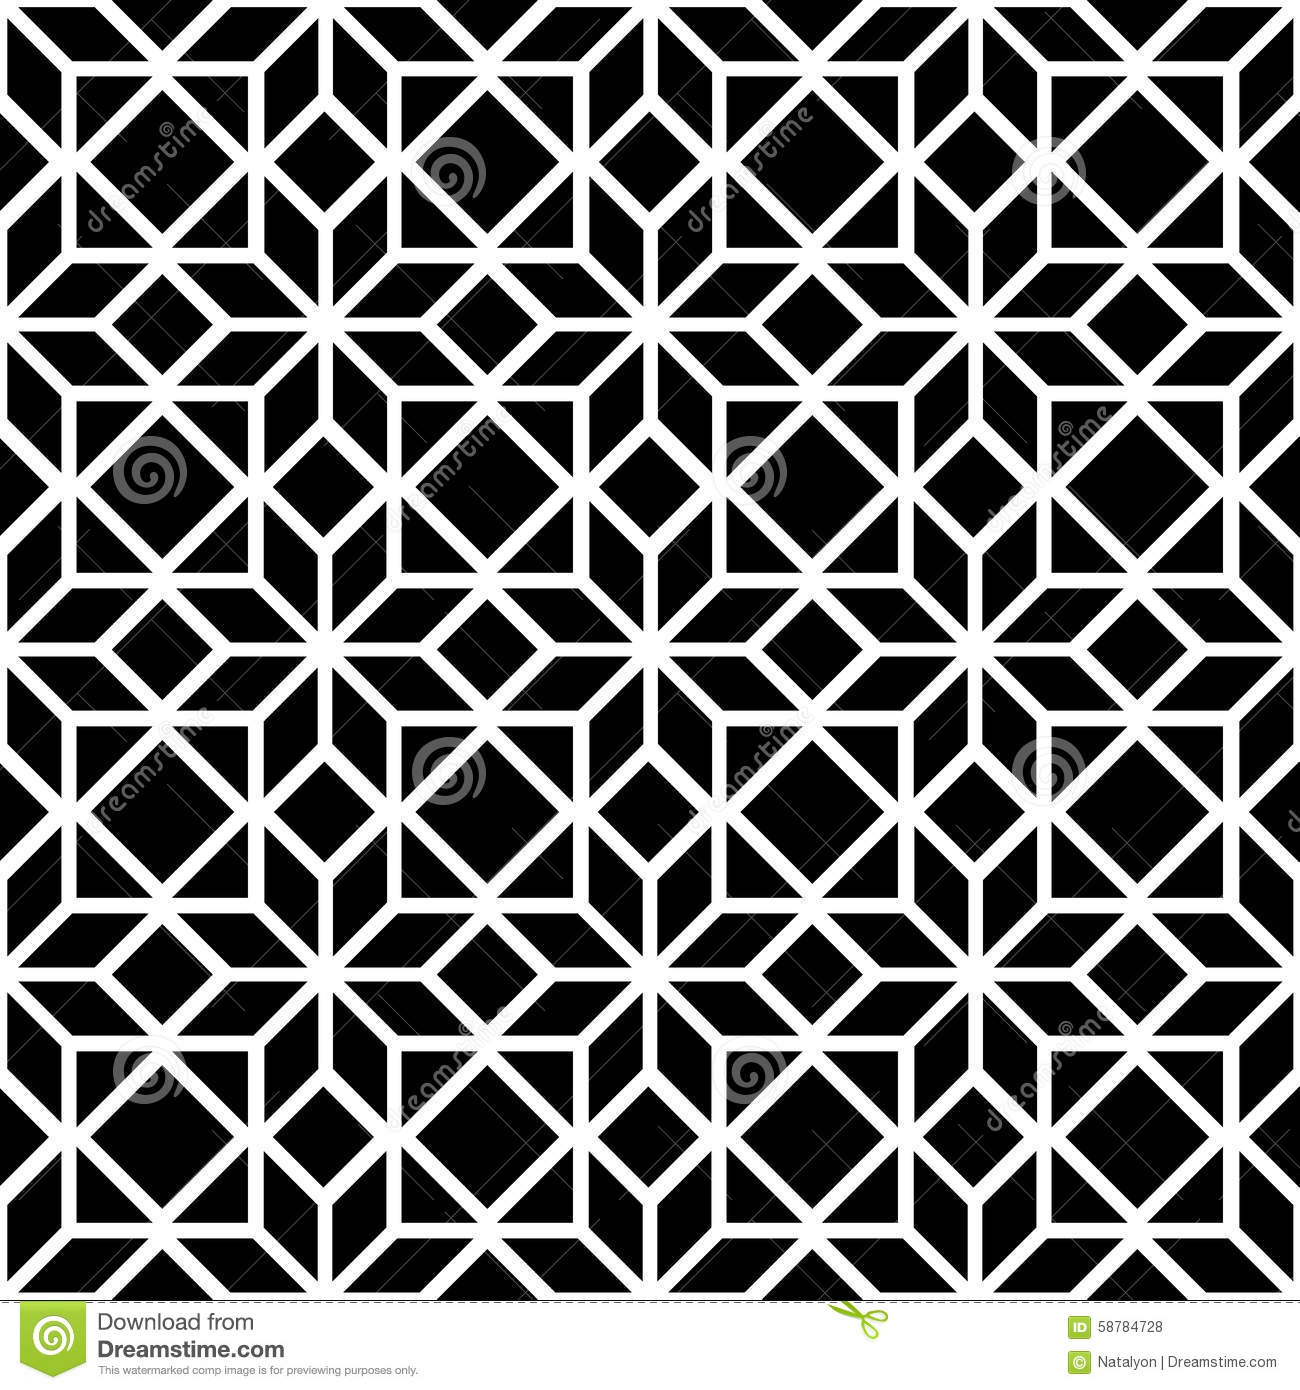 Black And White Simple Star Shape Geometric Seamless Pattern Vector Stock Vector Illustration Of Elegant Background 58784728,Pid Controller Design Tuning Parameters And Simulation For 4th Order Plant